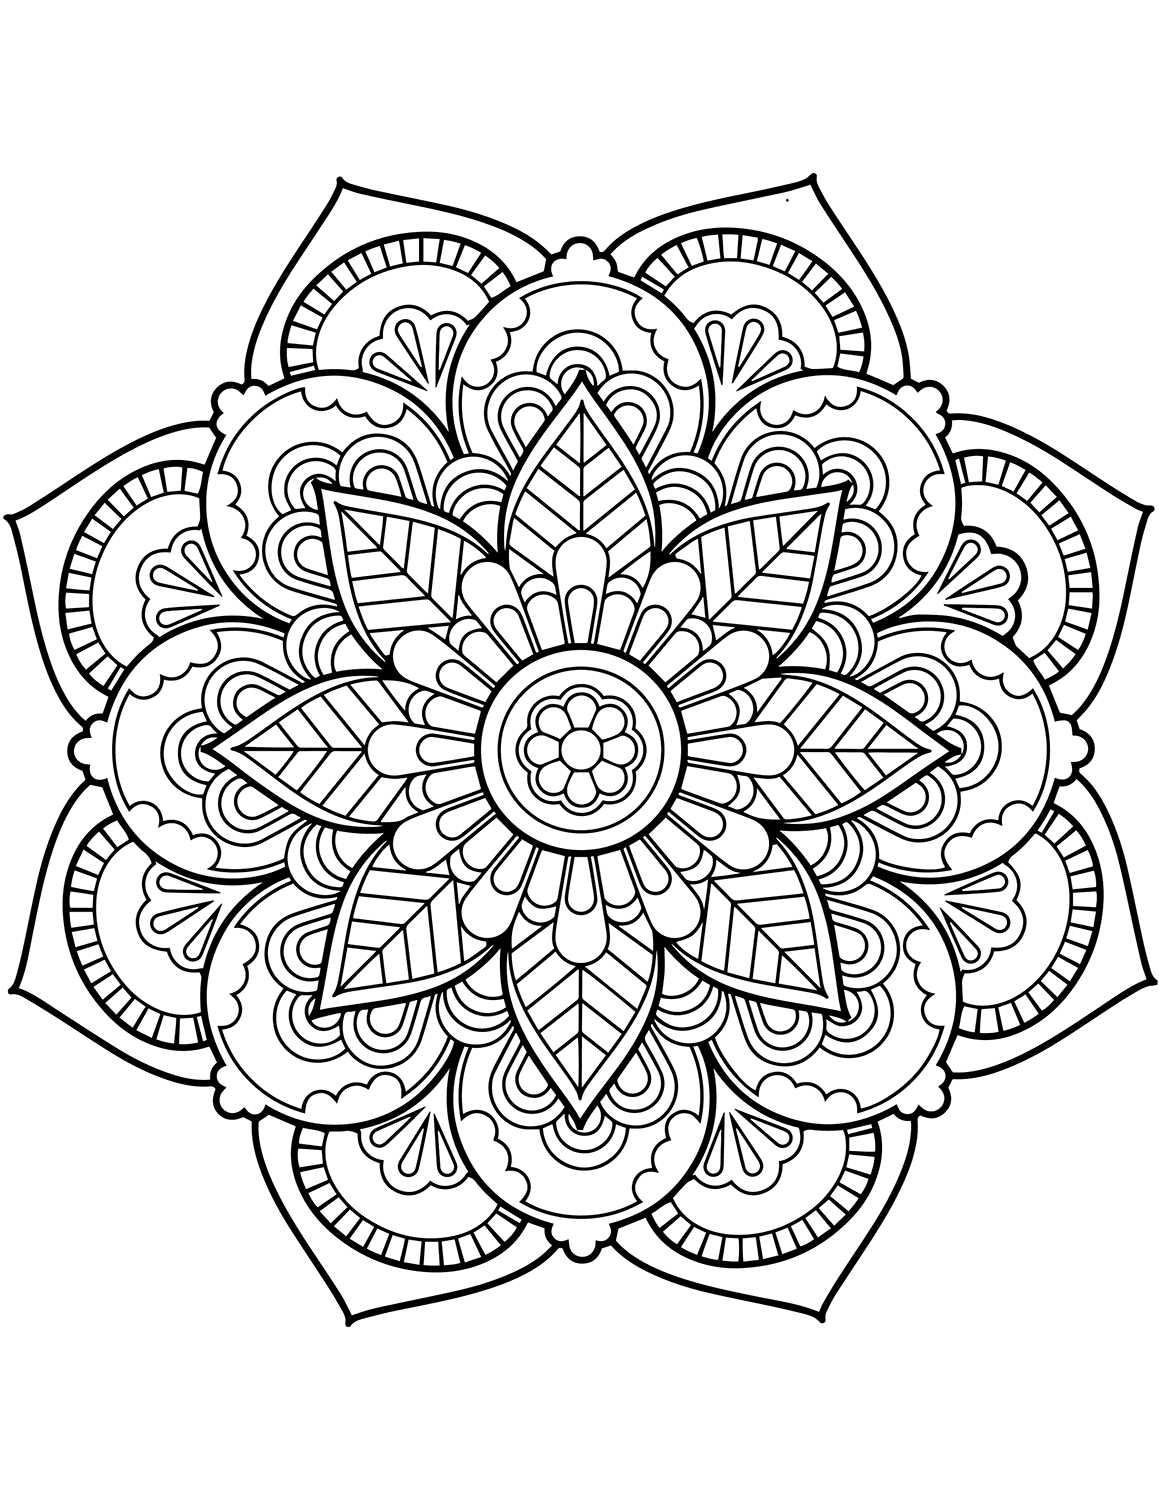 mandala flower flower mandala coloring pages best coloring pages for kids flower mandala